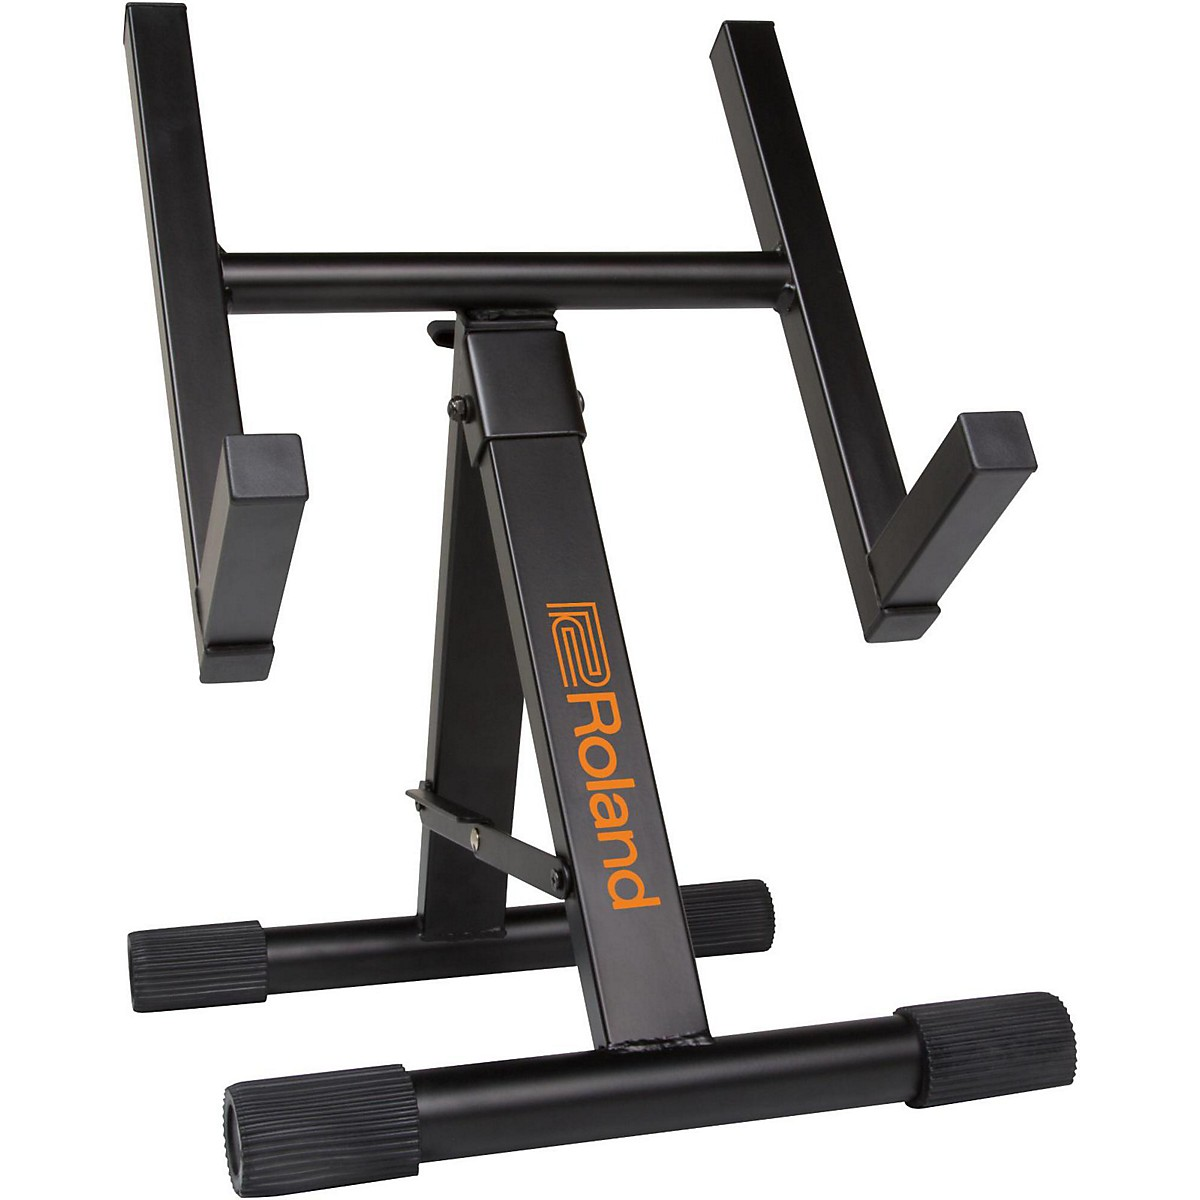 Roland Amp Stand-Small